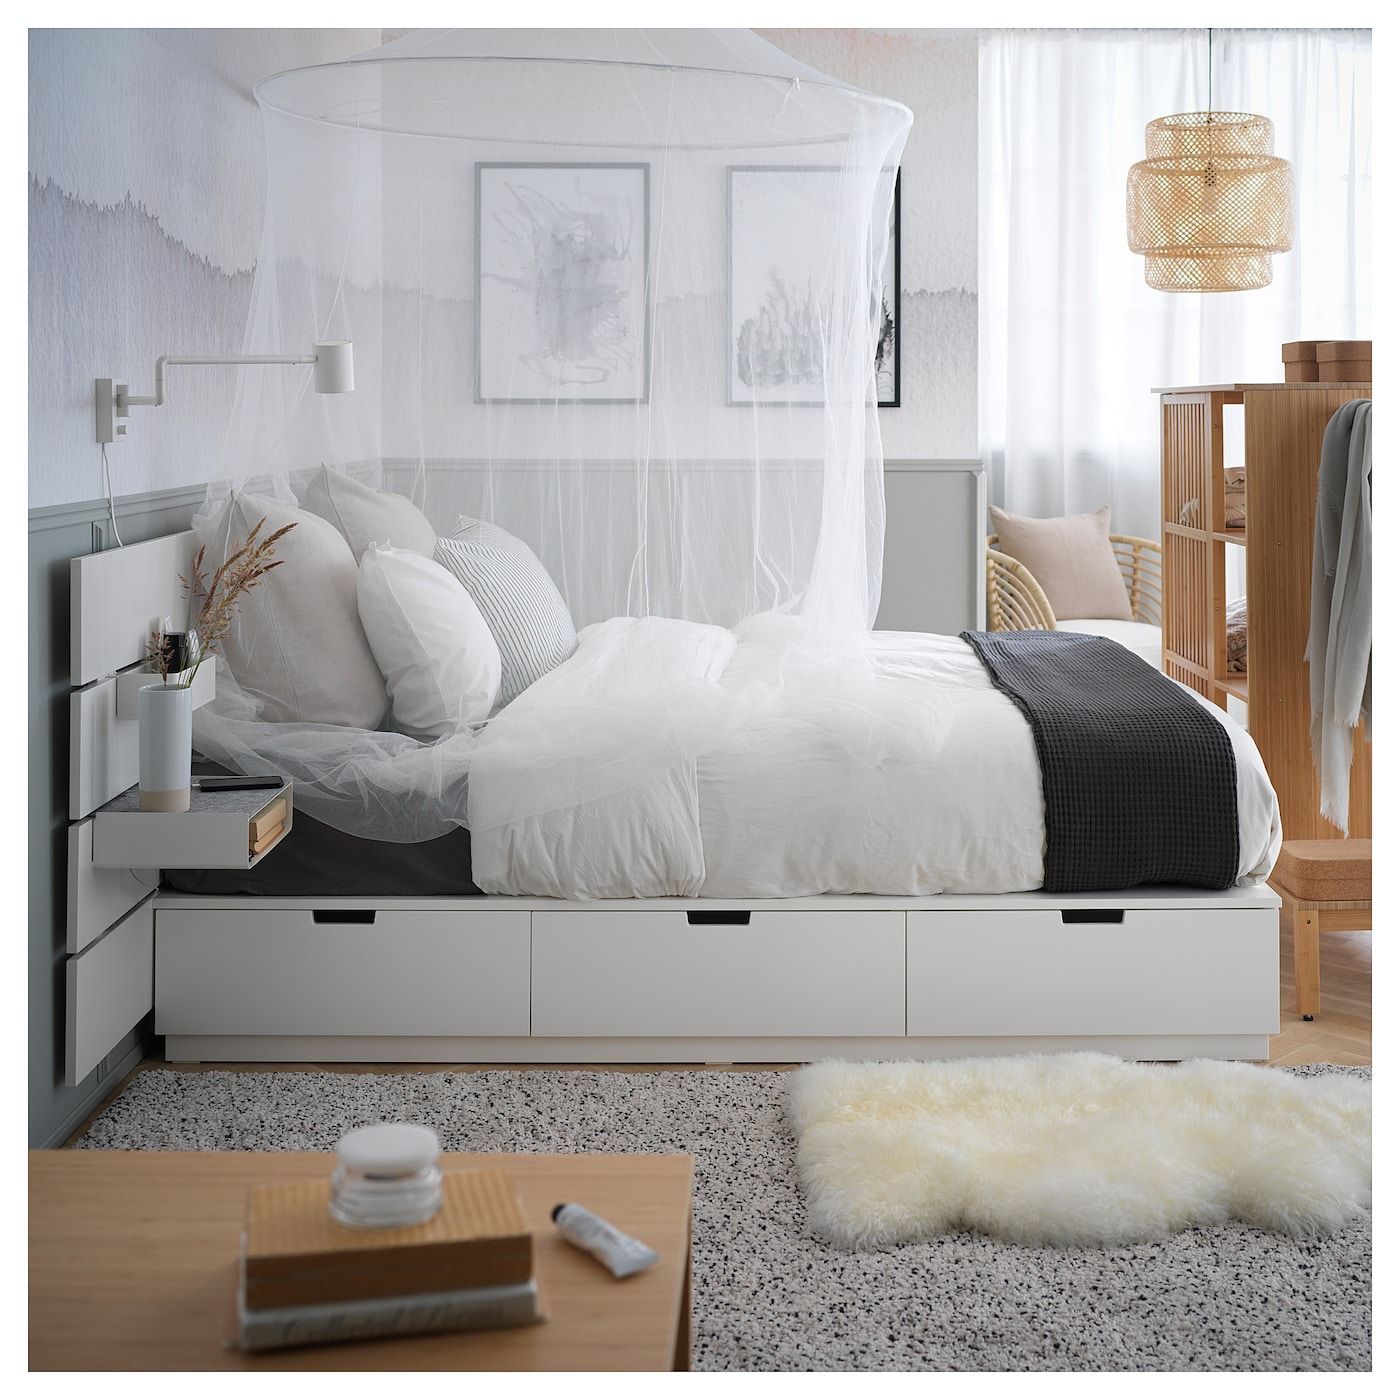 Ikea Nordli Bettgestell Mit Kopfteil Und Aufbewahrung Weiss Aufbewahrung Bettgestell Ikea Ko In 2020 Bed Frame With Storage Headboards For Beds Ikea Storage Bed